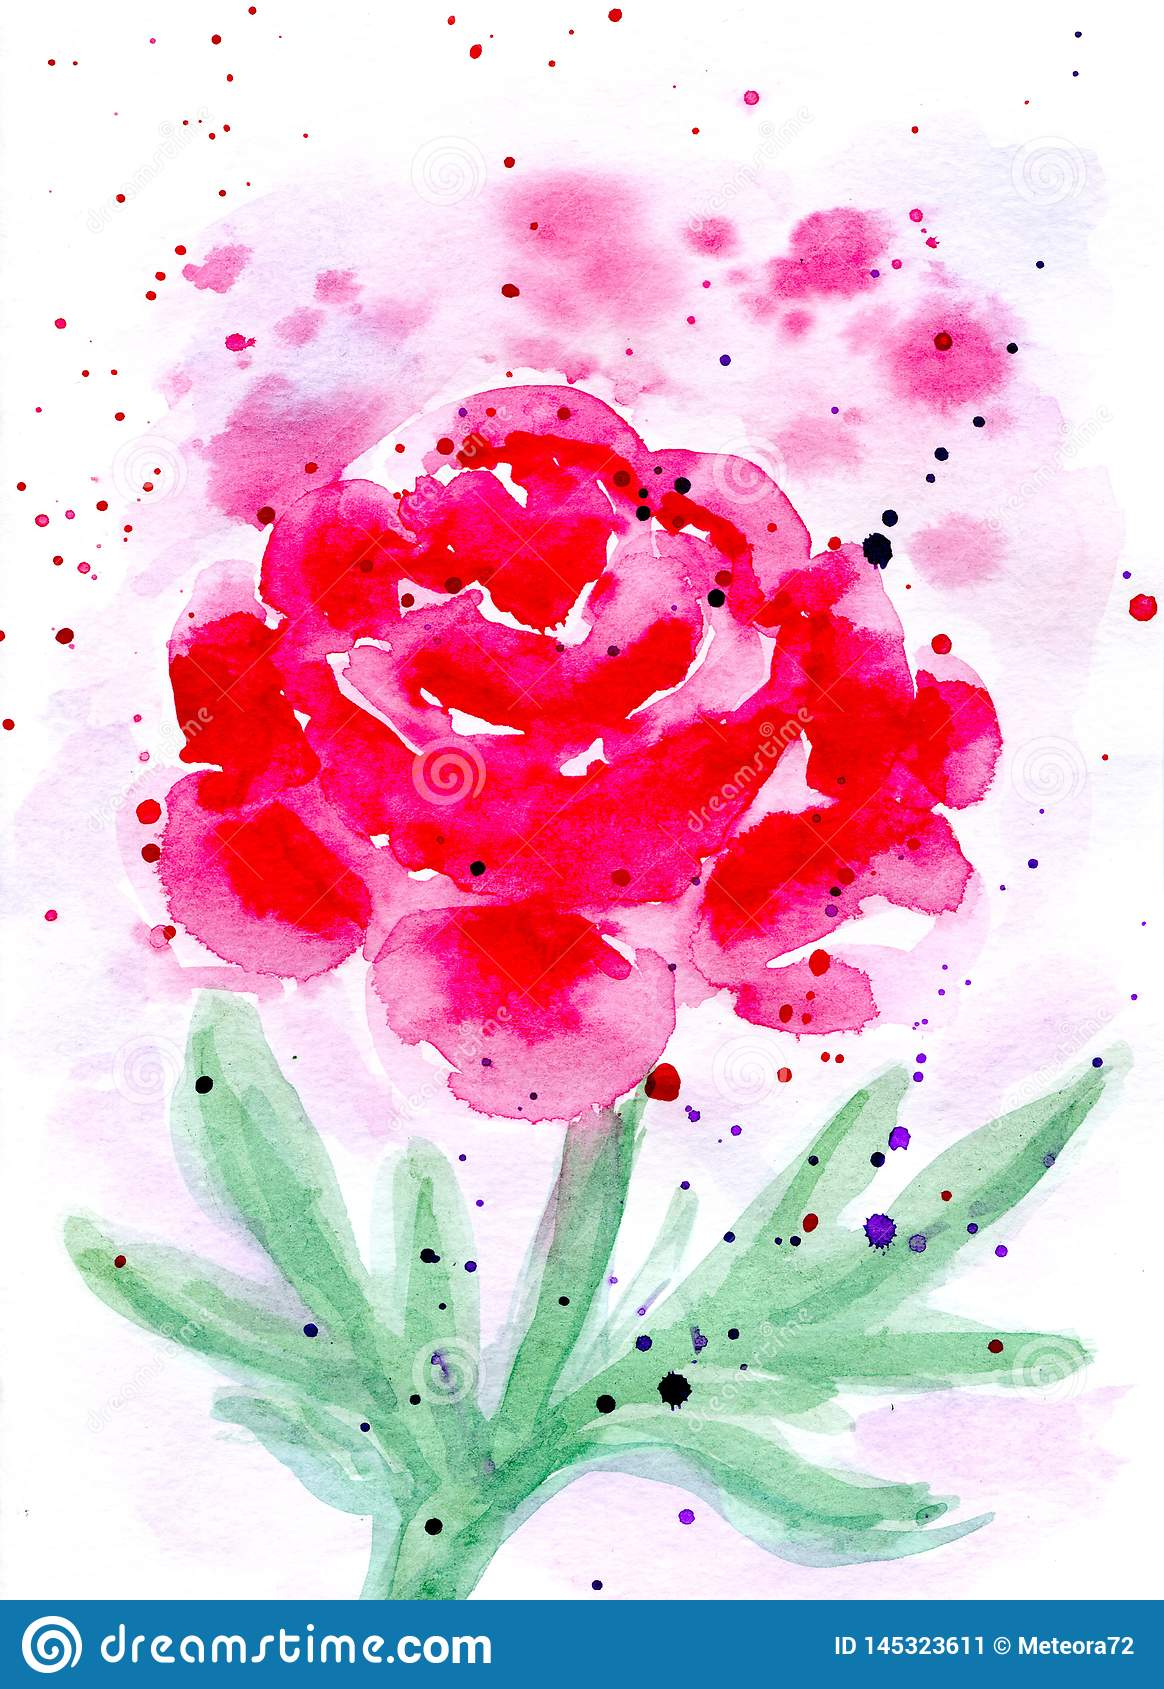 Watercolor abstract peony card. Raster illustration.